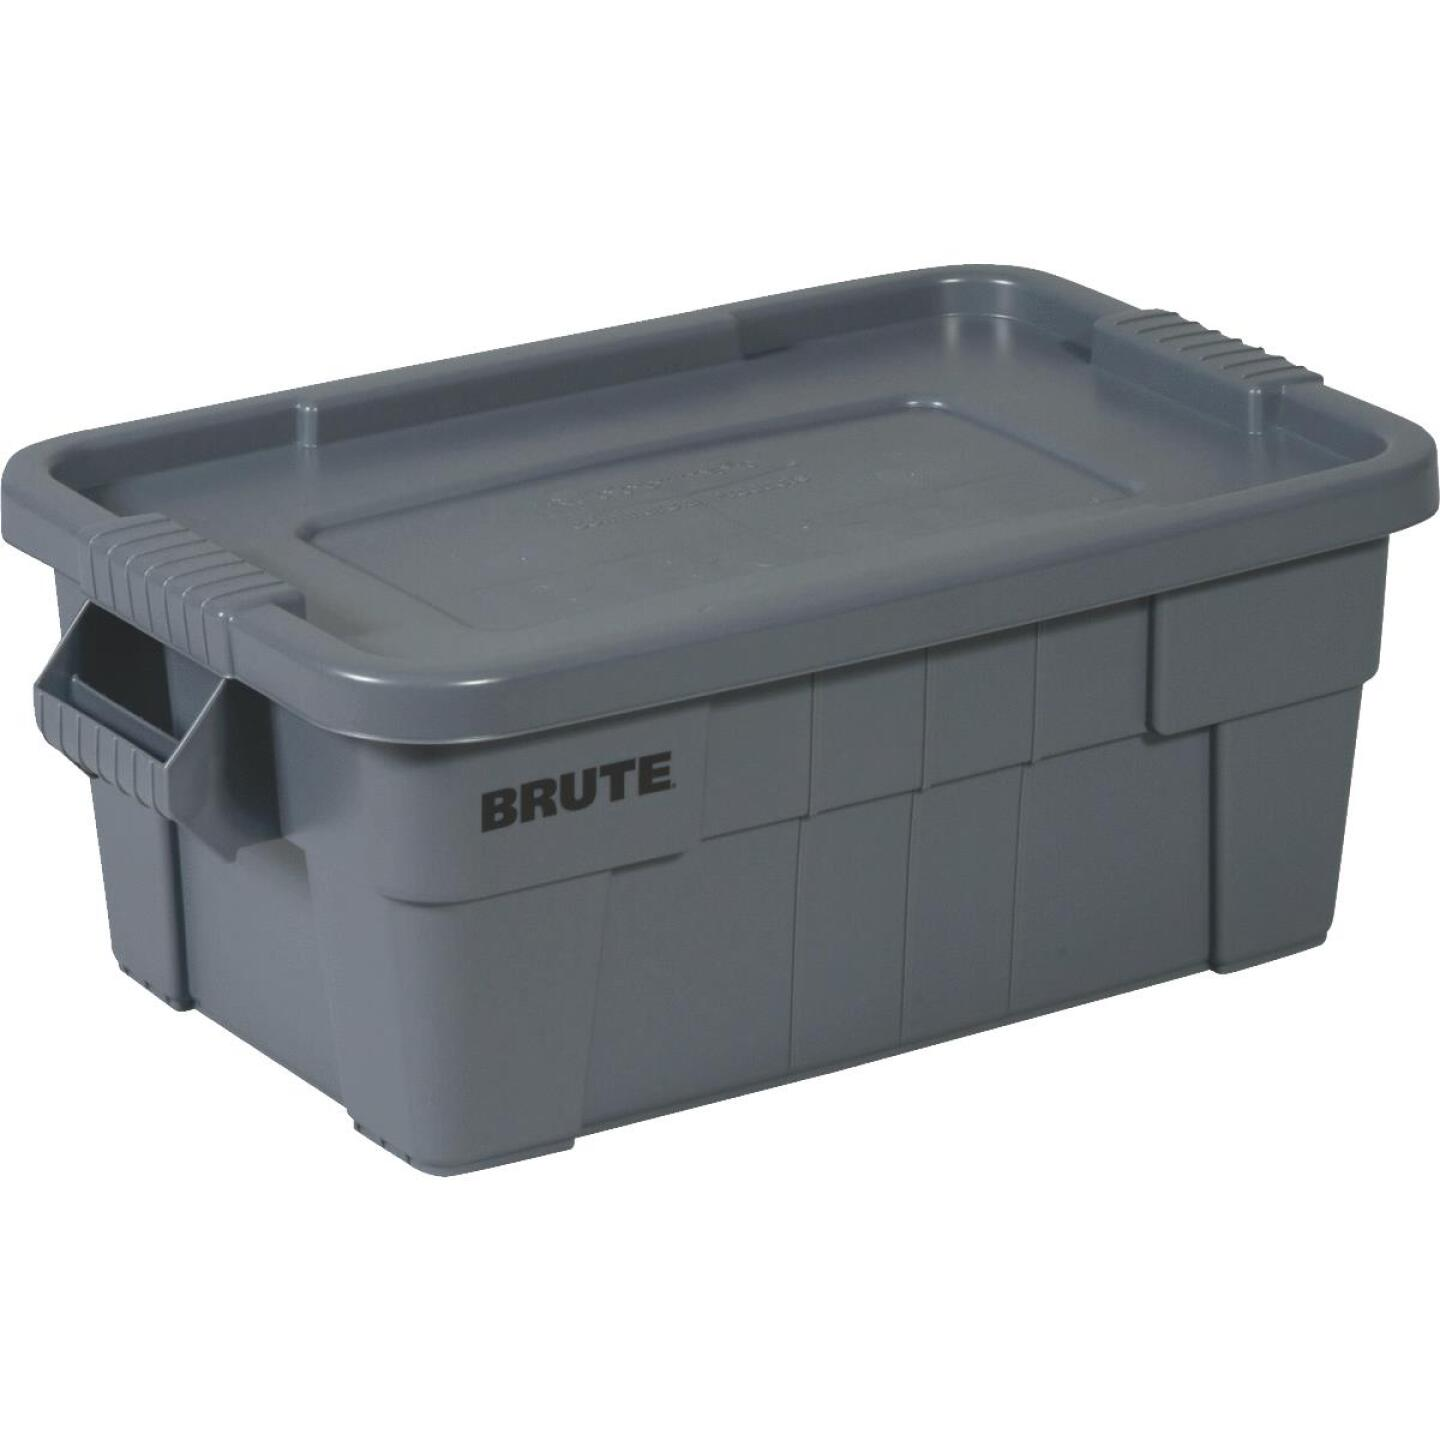 Rubbermaid 14 Gal. Gray Commercial Brute Storage Tote with Lid Image 1